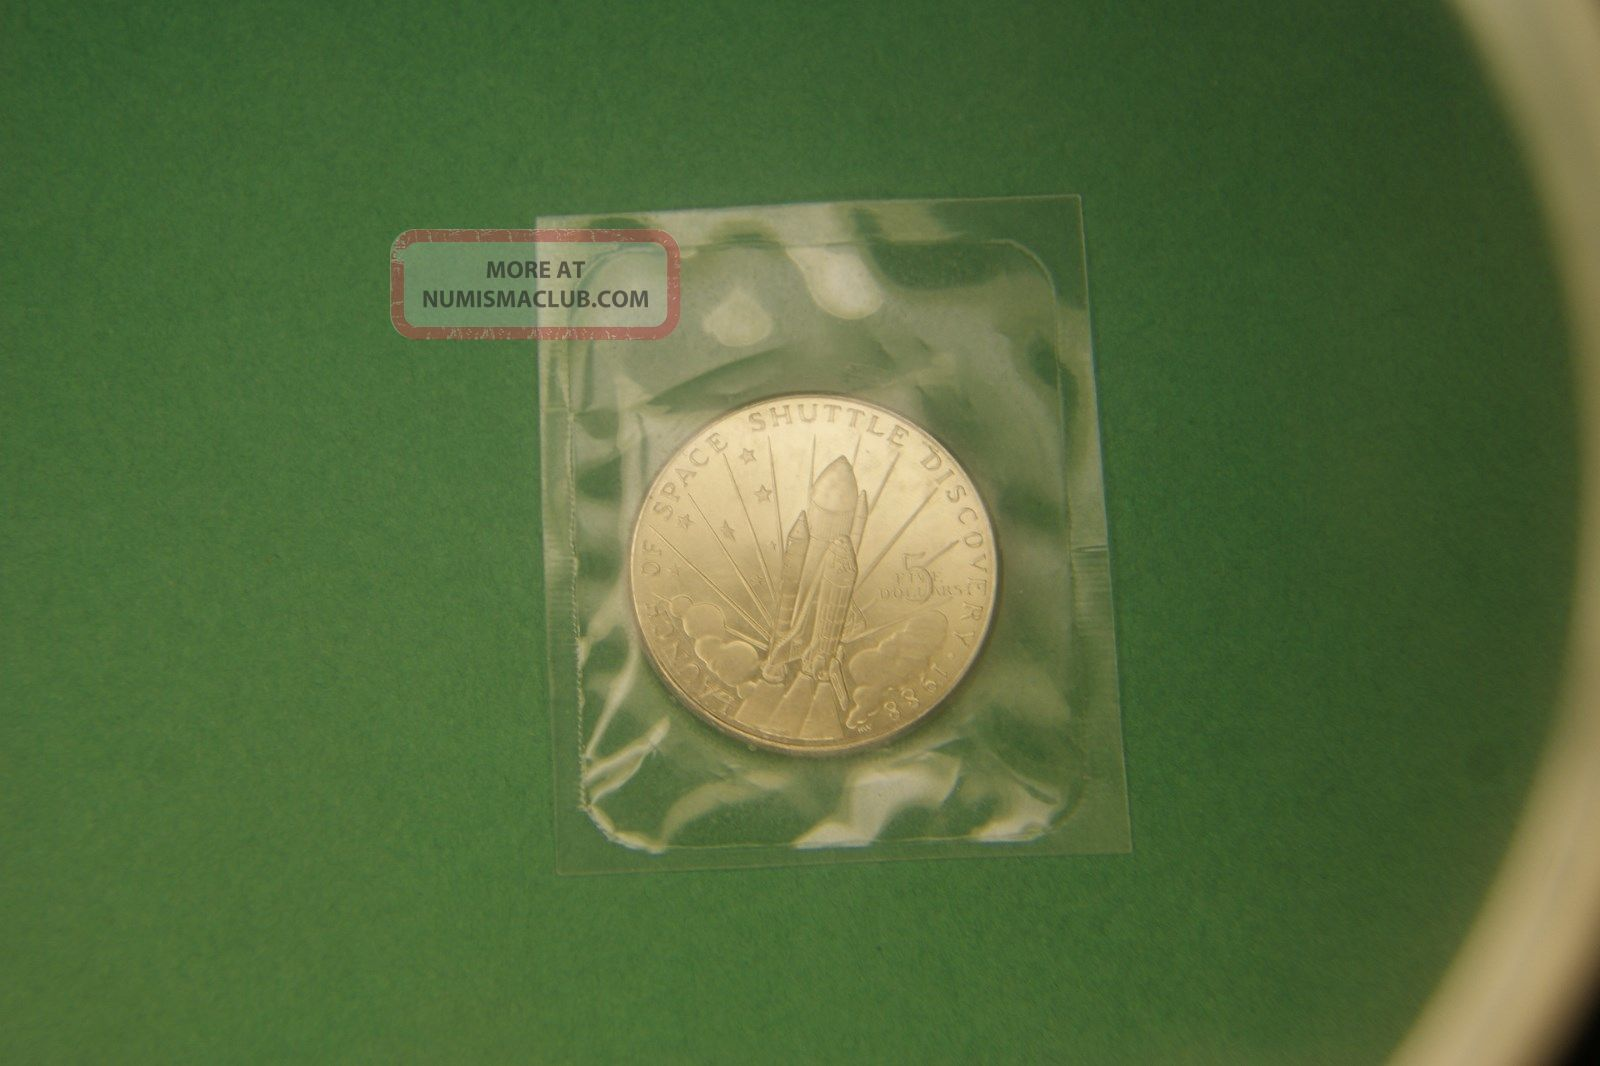 space shuttle discovery 5 dollar coin worth - photo #11